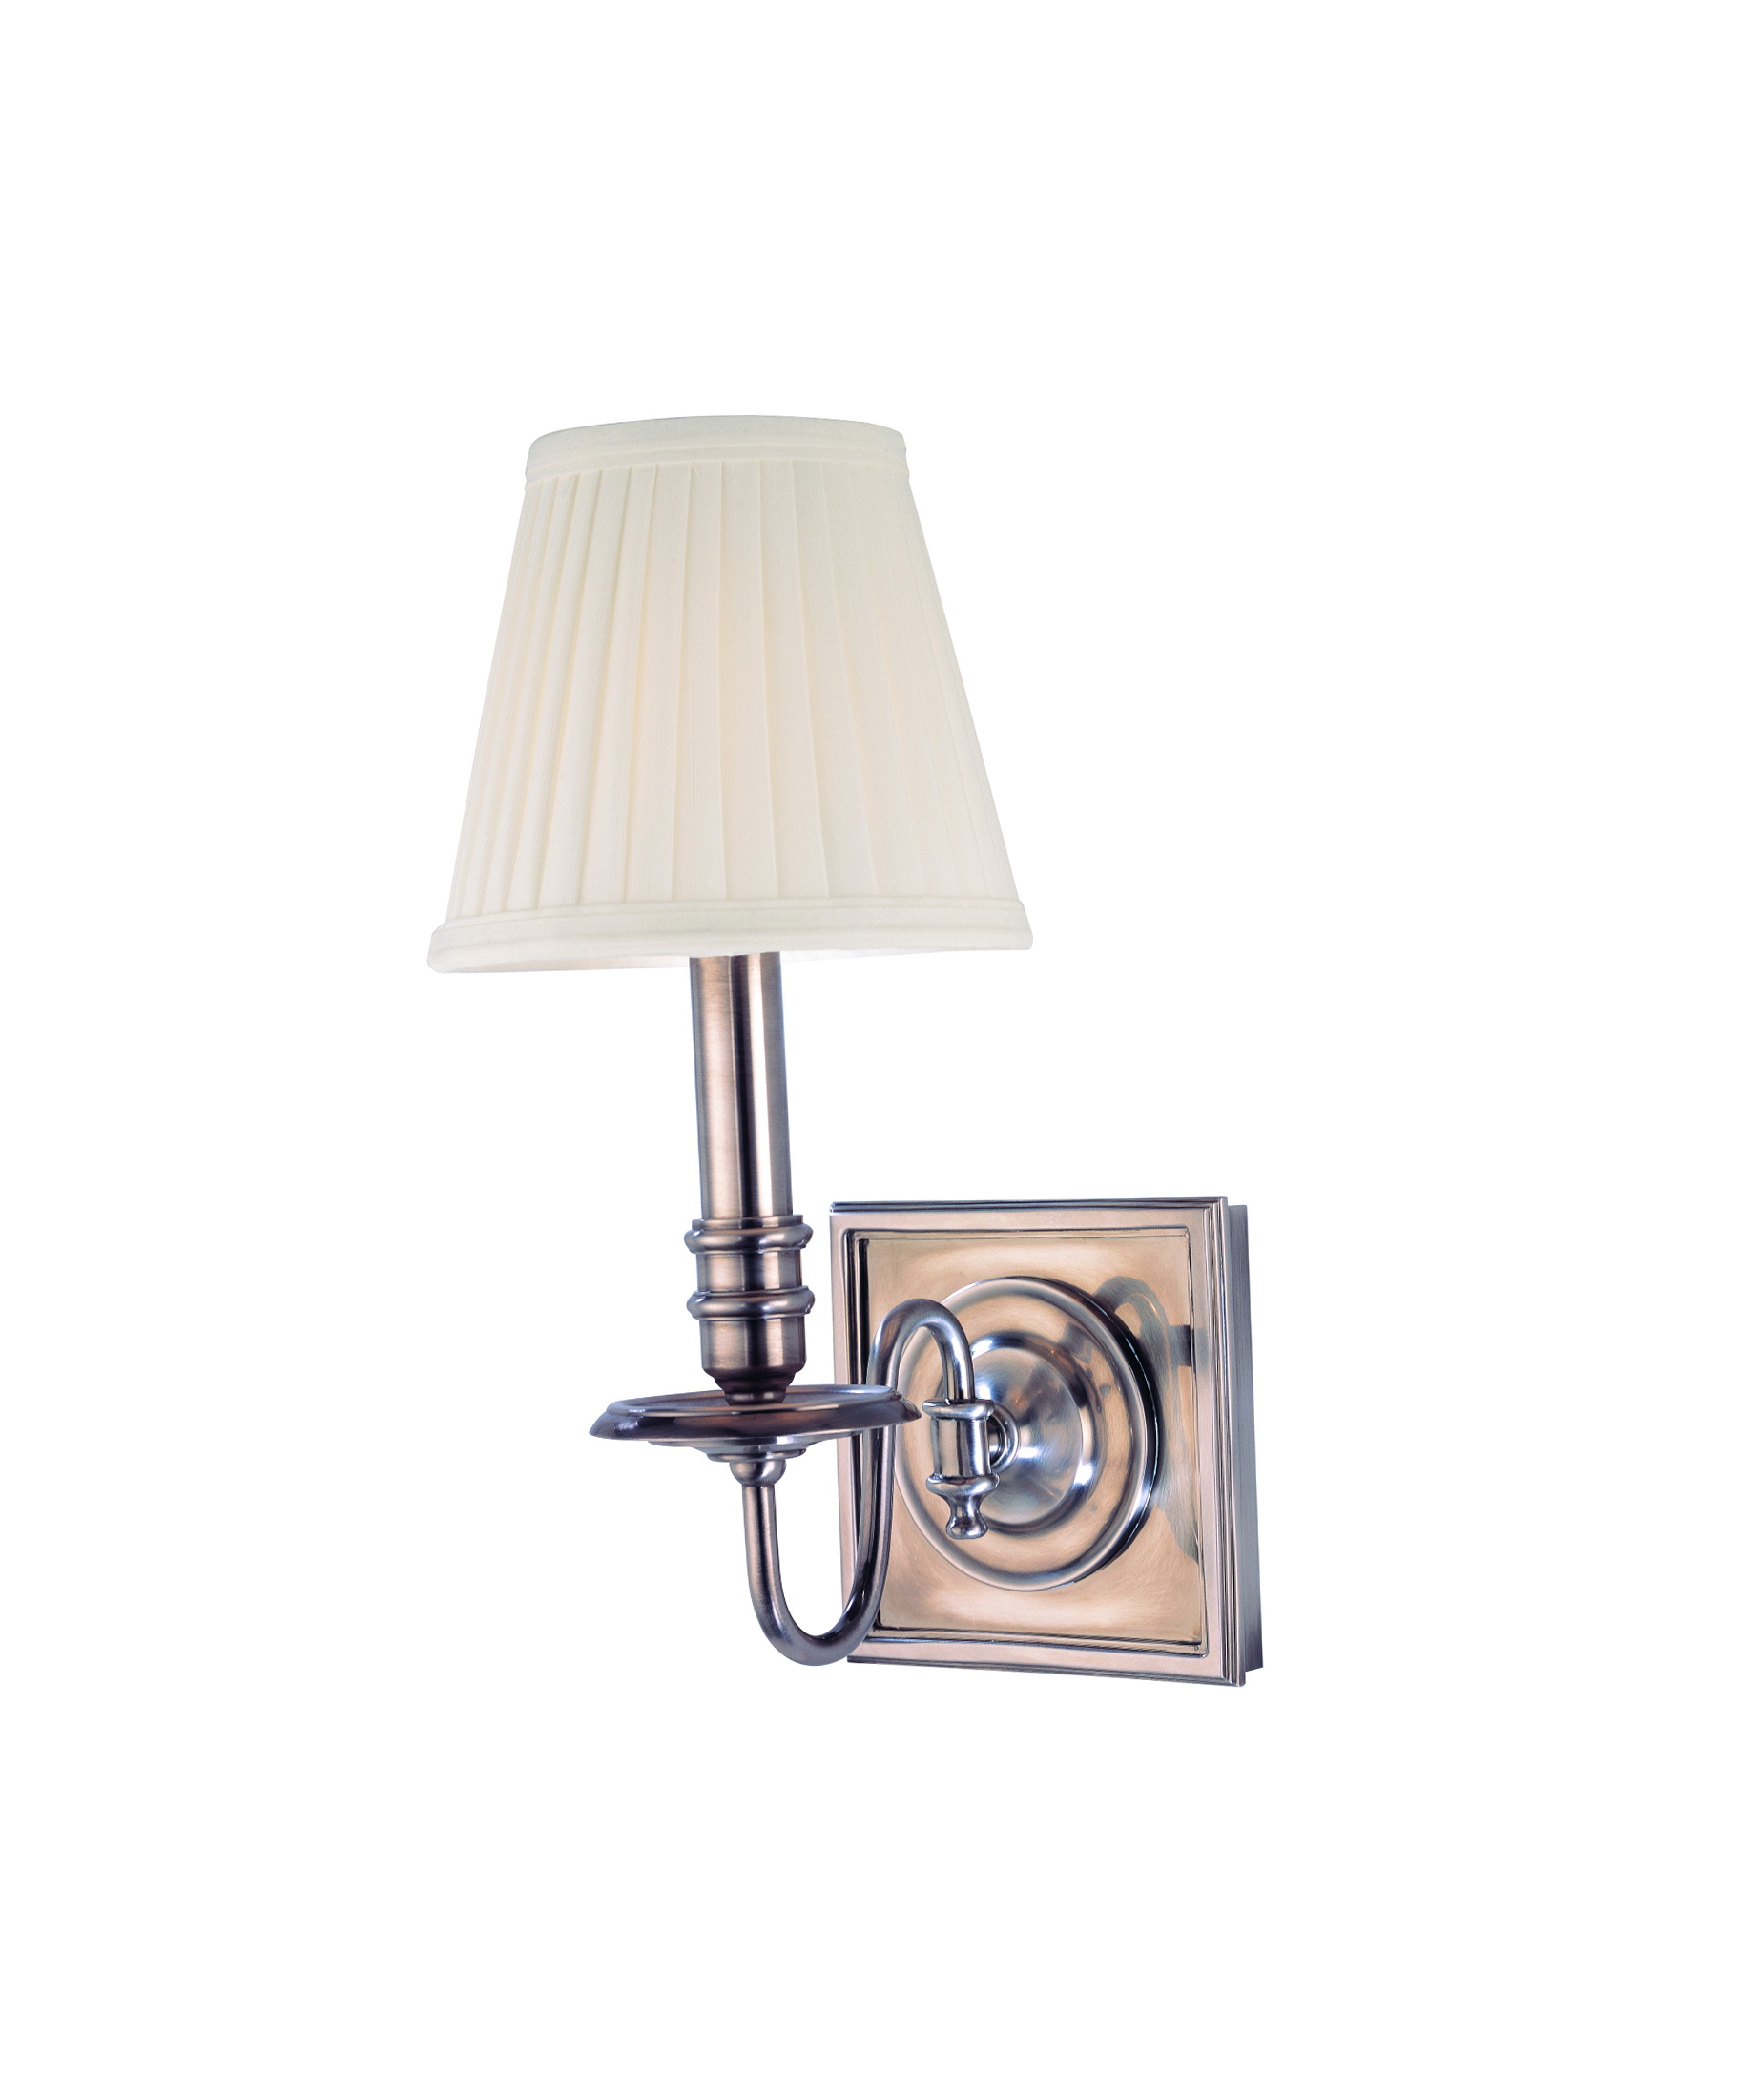 Hardwired Wall Sconce With On Off Switch Home Design Ideas